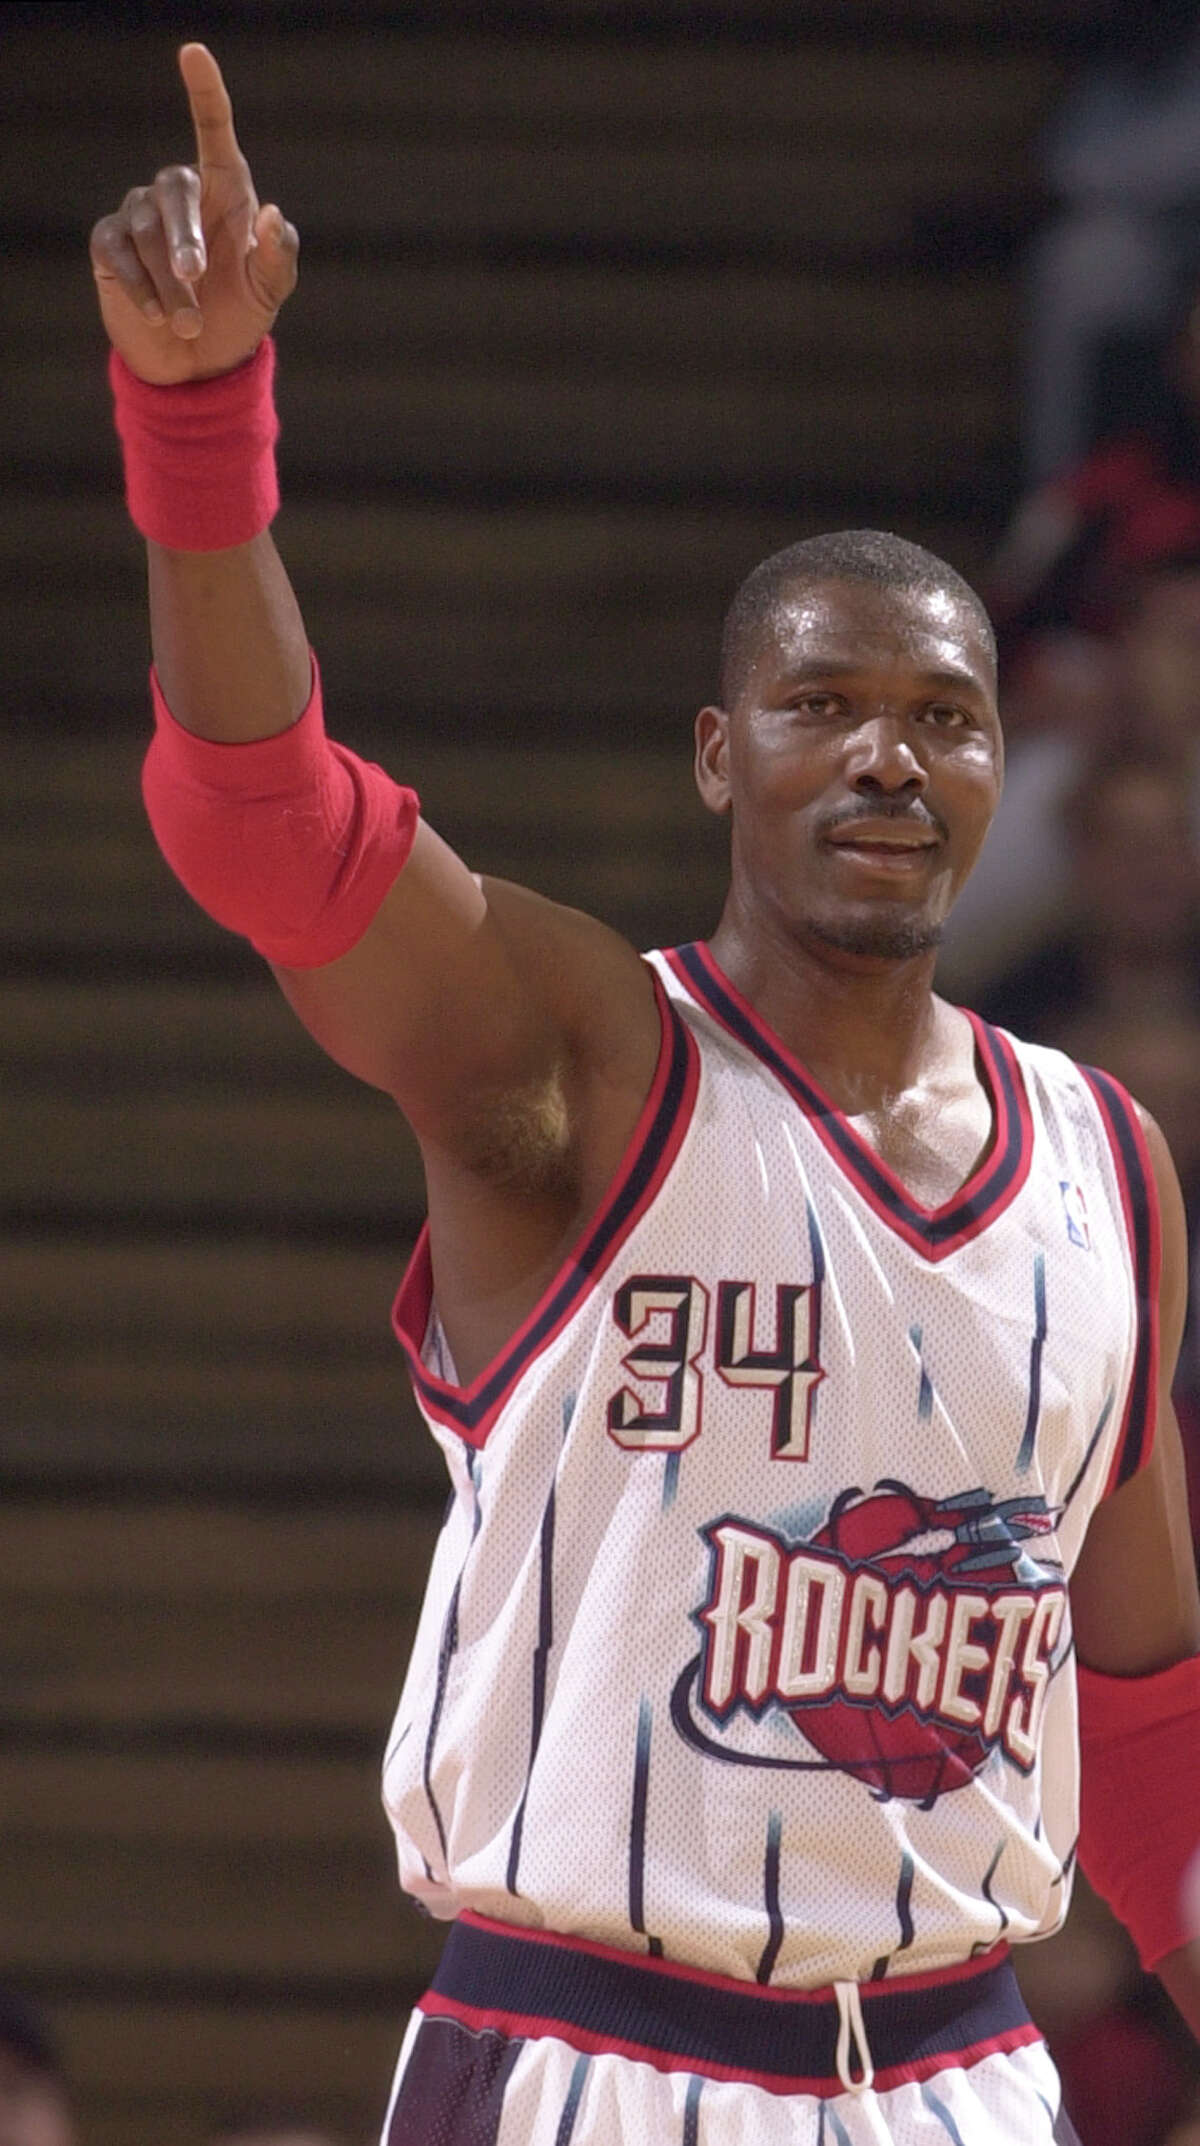 Hakeem Olajuwon celebrates after he started a fast break that ended in a Steve Francis slam during the first quarter of the Houston Rockets season finale vs. the Minnesota Timberwolves at Compaq Center in Houston, TX Tuesday night April 17, 2001. (Smiley N. Pool/Houston Chronicle) 04/17/01. HOUCHRON CAPTION (04/19/2001): A top priority for the Rockets during the off-season is setting the status of Hakeem Olajuwon, who hopes to play another season, with Houston as his preferred locale. HOUCHRON CAPTION (08/02/2001): Hakeem Olajuwon led the Rockets to two NBA championships. HOUCHRON CAPTION (08/04/2001): Houston has had many sports icons, and coincidentally, some of the best have worn the number 34: Earl Campbell (NOT PICTURED). Nolan Ryan (NOT PICTURED). Hakeem Olajuwon. In Sports 2, the Chronicle relives Olajuwon's stellar career and lists his 34 greatest moments as a Rocket. HOUCHRON CAPTION (08/05/2001): On the cover: Hakeem Olajuwon photographed by the Chronicle's Smiley N. Pool during his final game in a Rockets uniform on April 17, 2001. HOUSTON CHRONICLE SPECIAL SECTION: HAKEEM OLAJUWON: SPACE CITY DREAM.